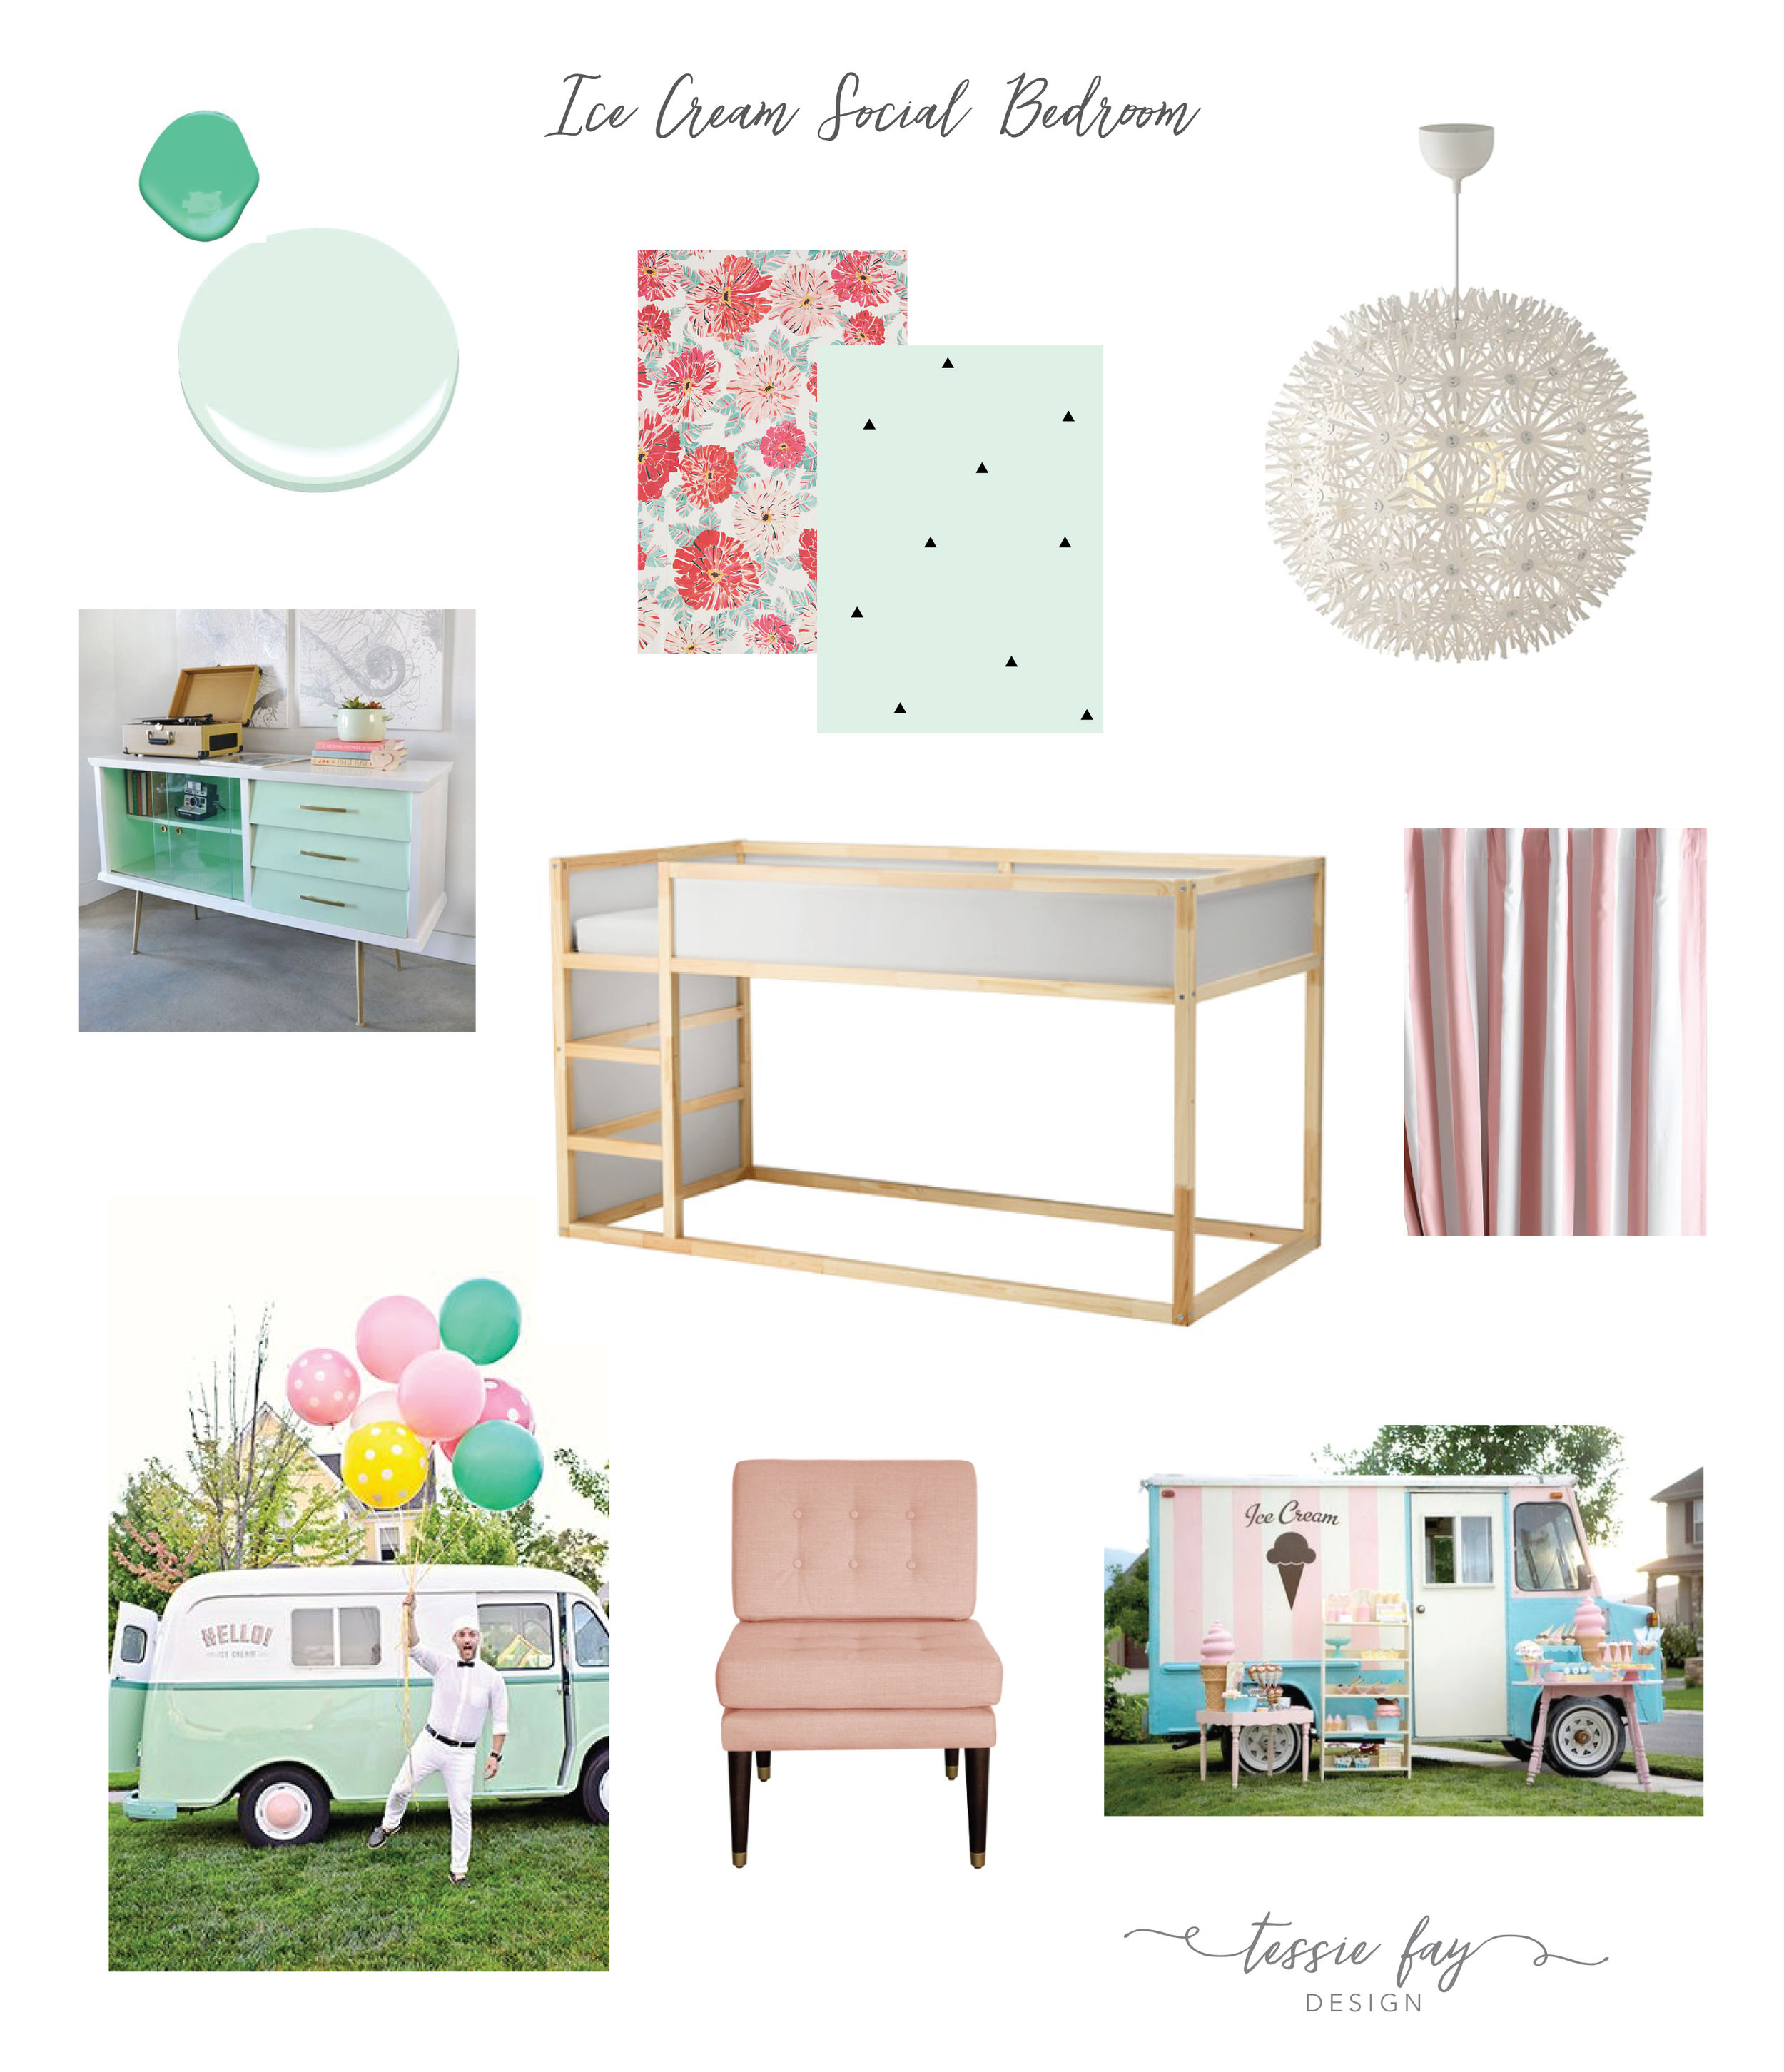 Ice Cream Social Bedroom Mood board. Little Girl Bedroom Makeover.